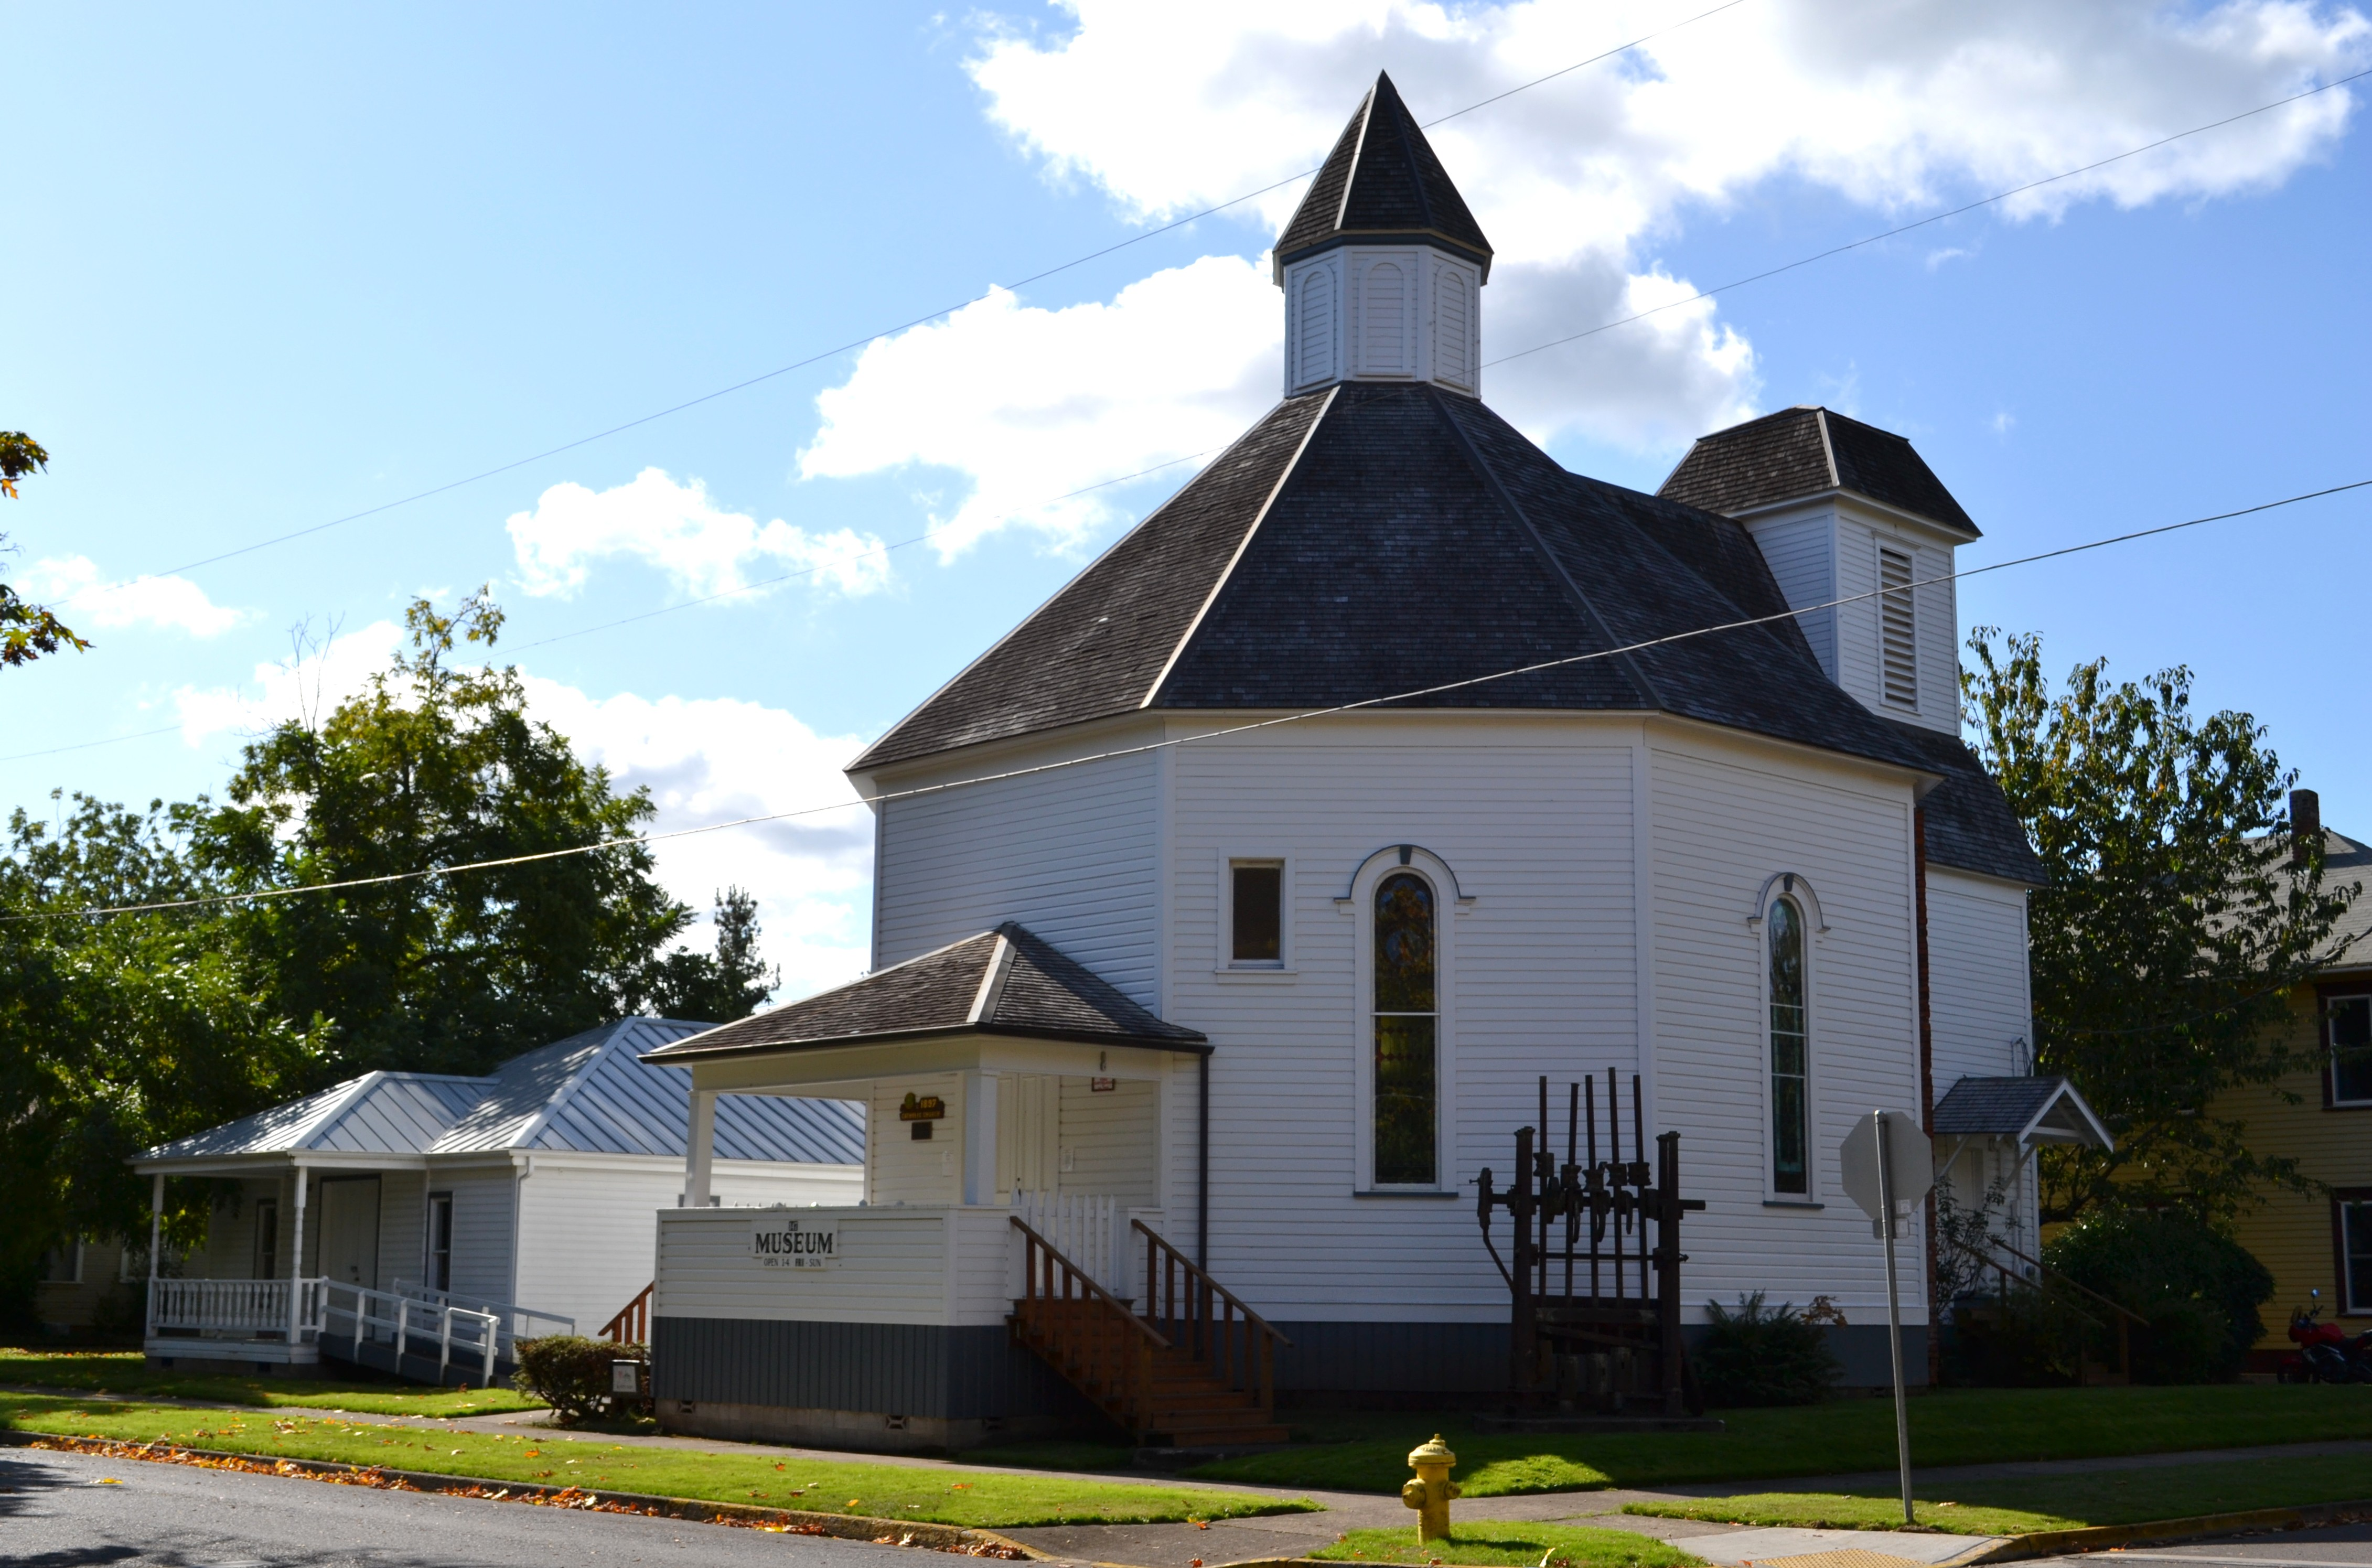 file:our lady of perpetual help catholic church (cottage grove